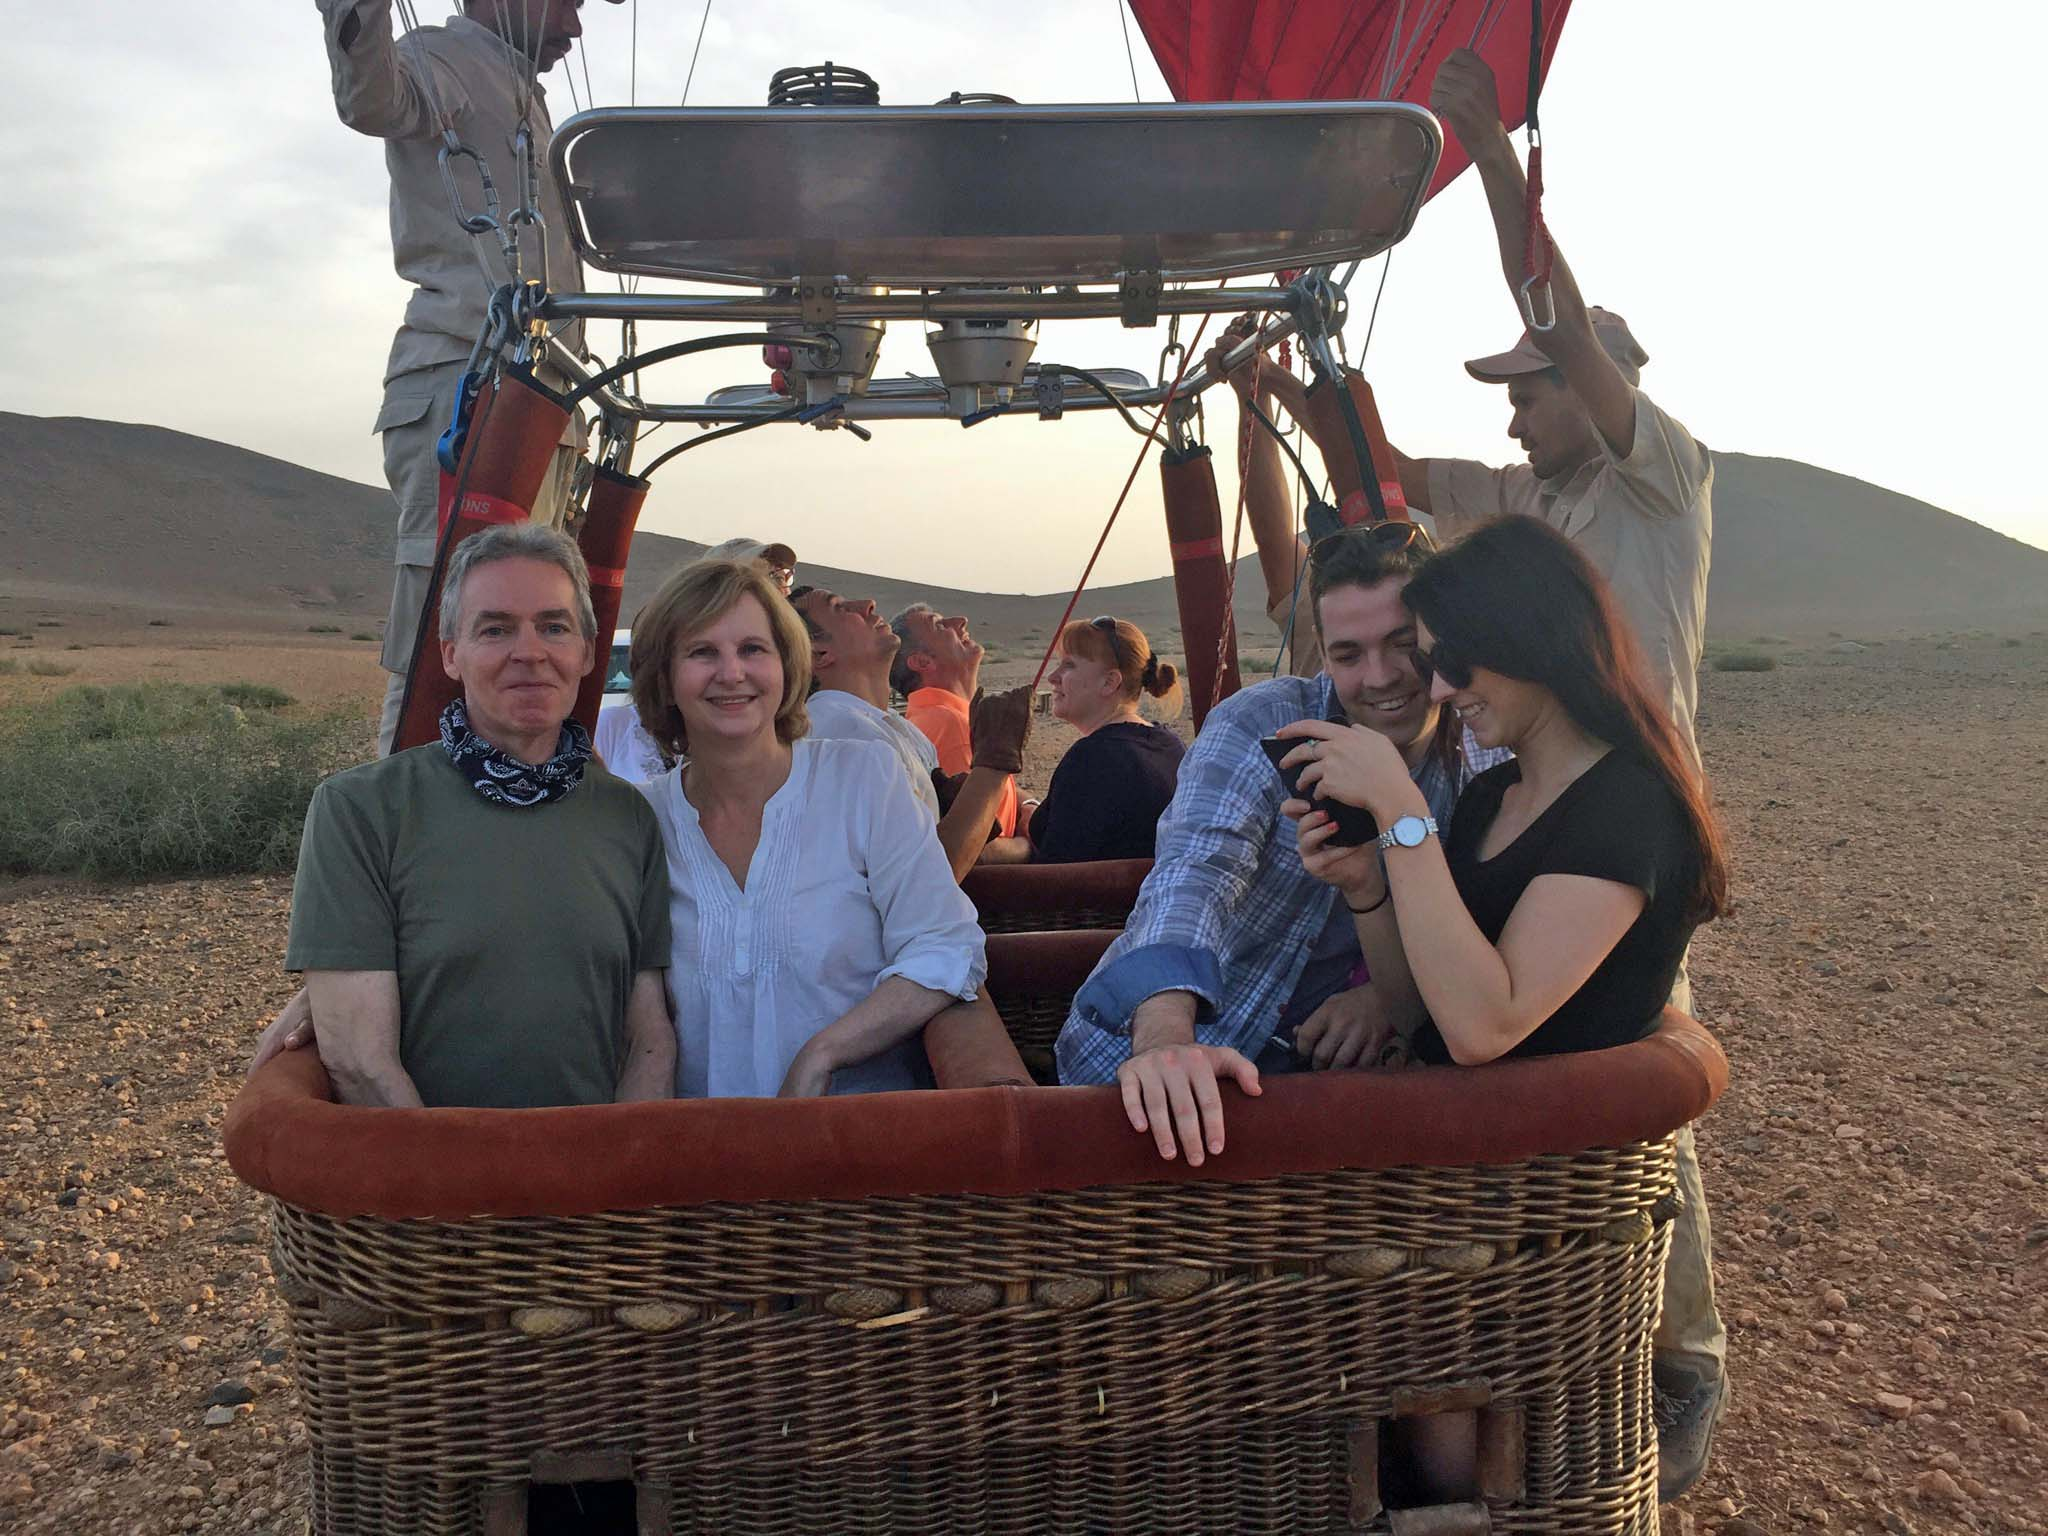 People in a balloon basket